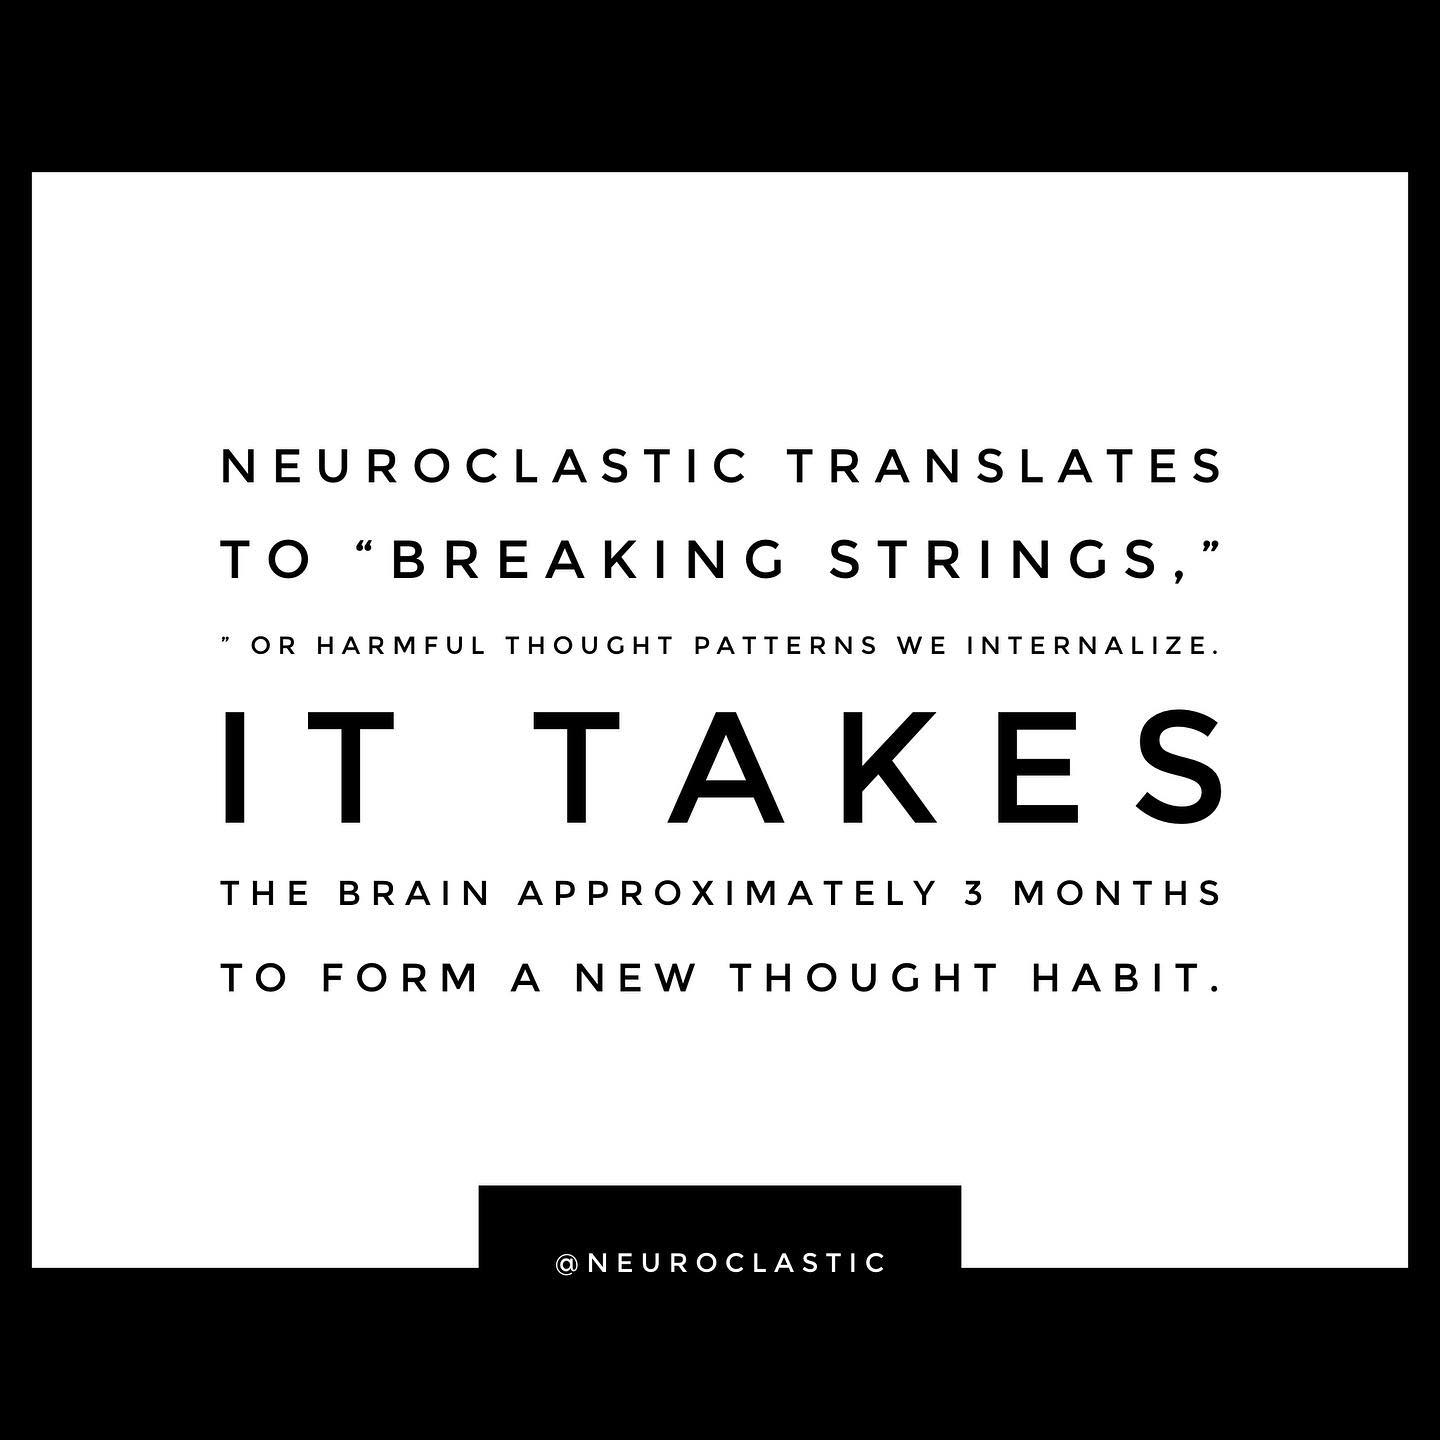 """NeuroClastic translates to """"breaking strings,"""" or harmful thought patterns we internalize. It takes the brain approximately 3 months to form a new thought habit. @NeuroClastic"""